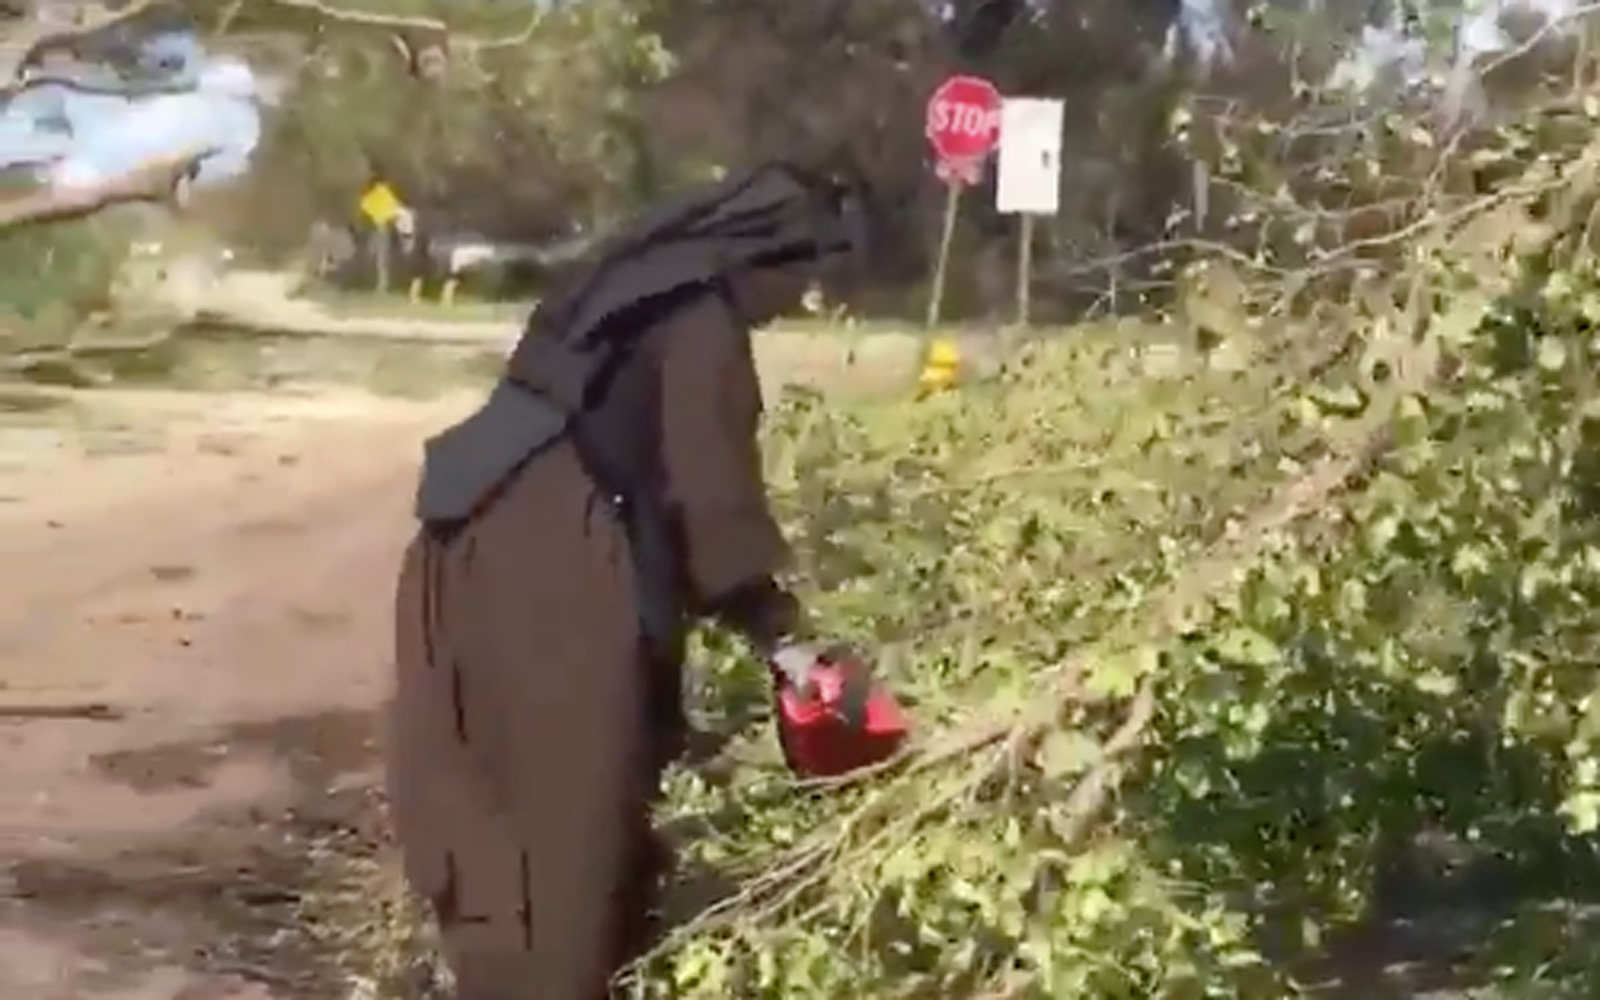 Florida Nun who chainsawed trees after Irma speaks about helping others